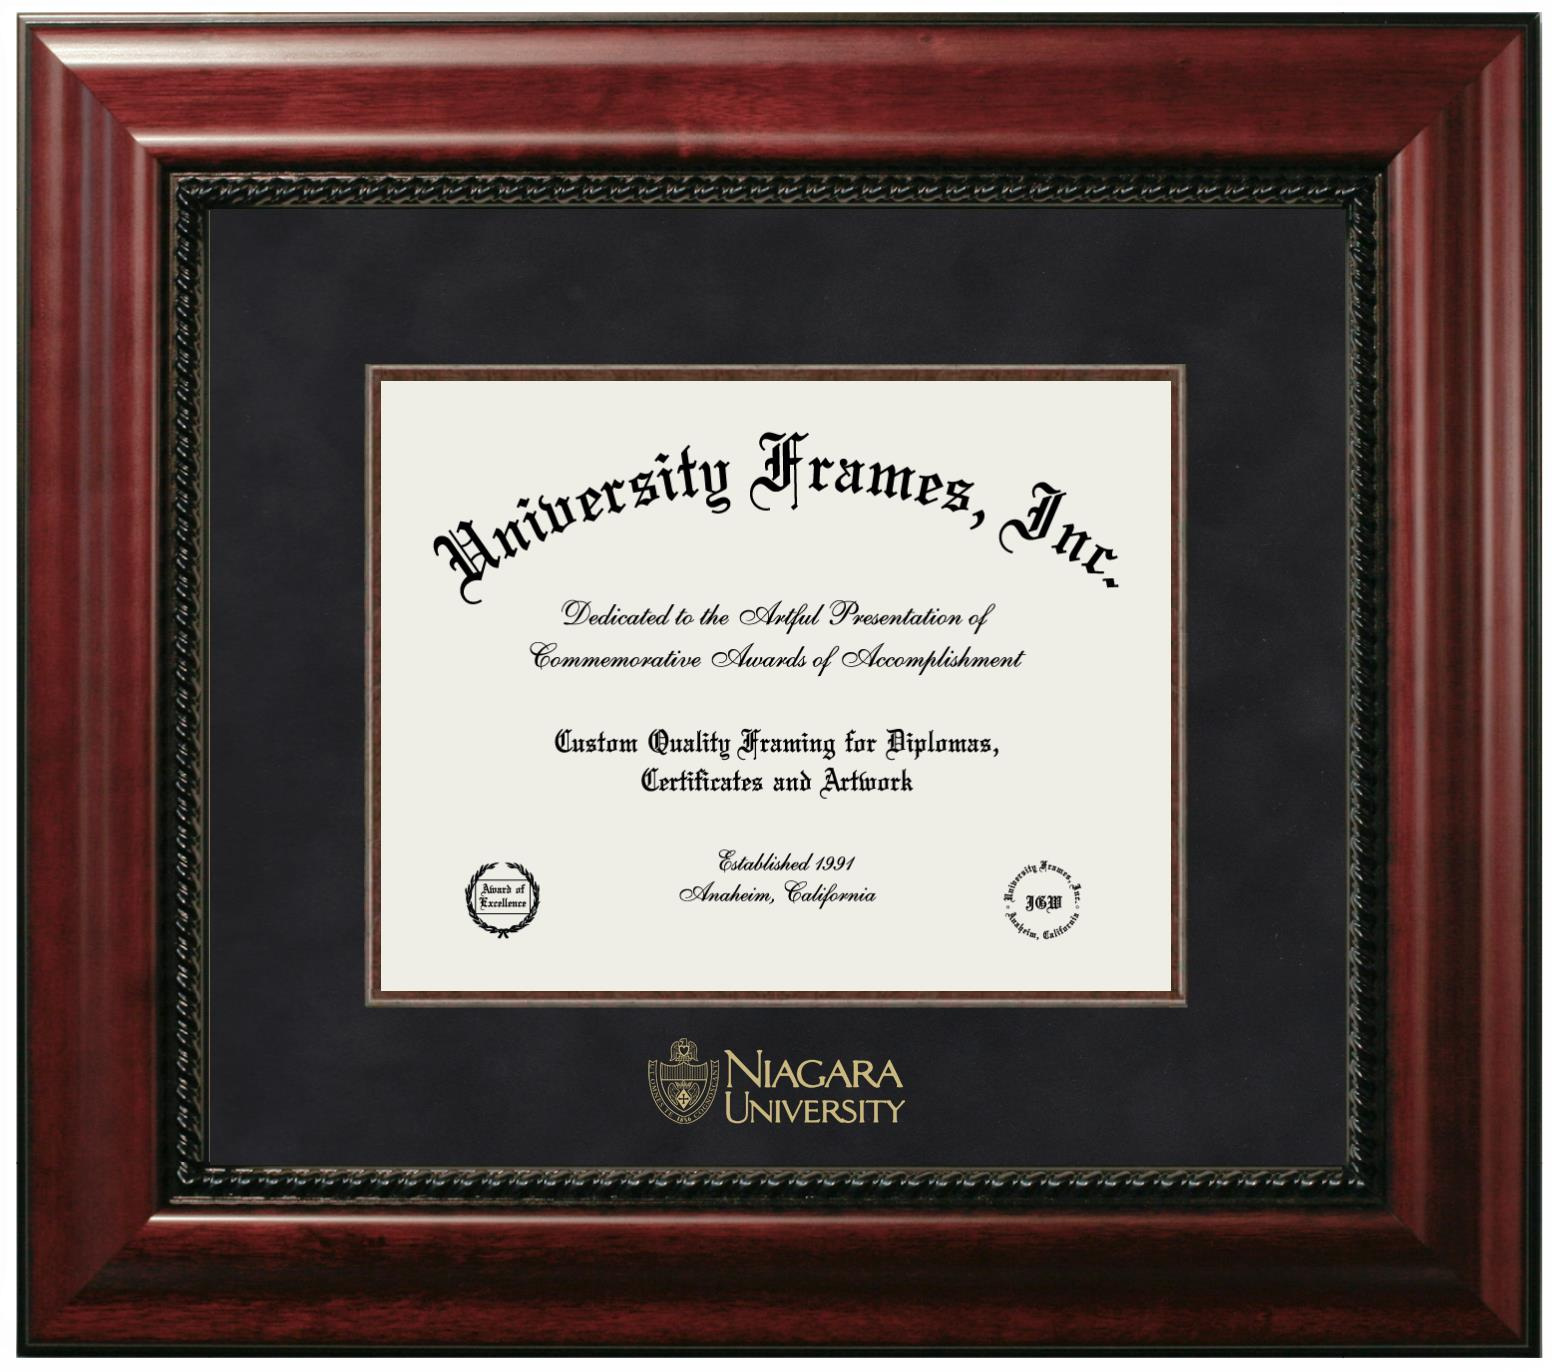 Niagara University Diploma Frame In Executive With Gold Fillet With Black Suede Mat